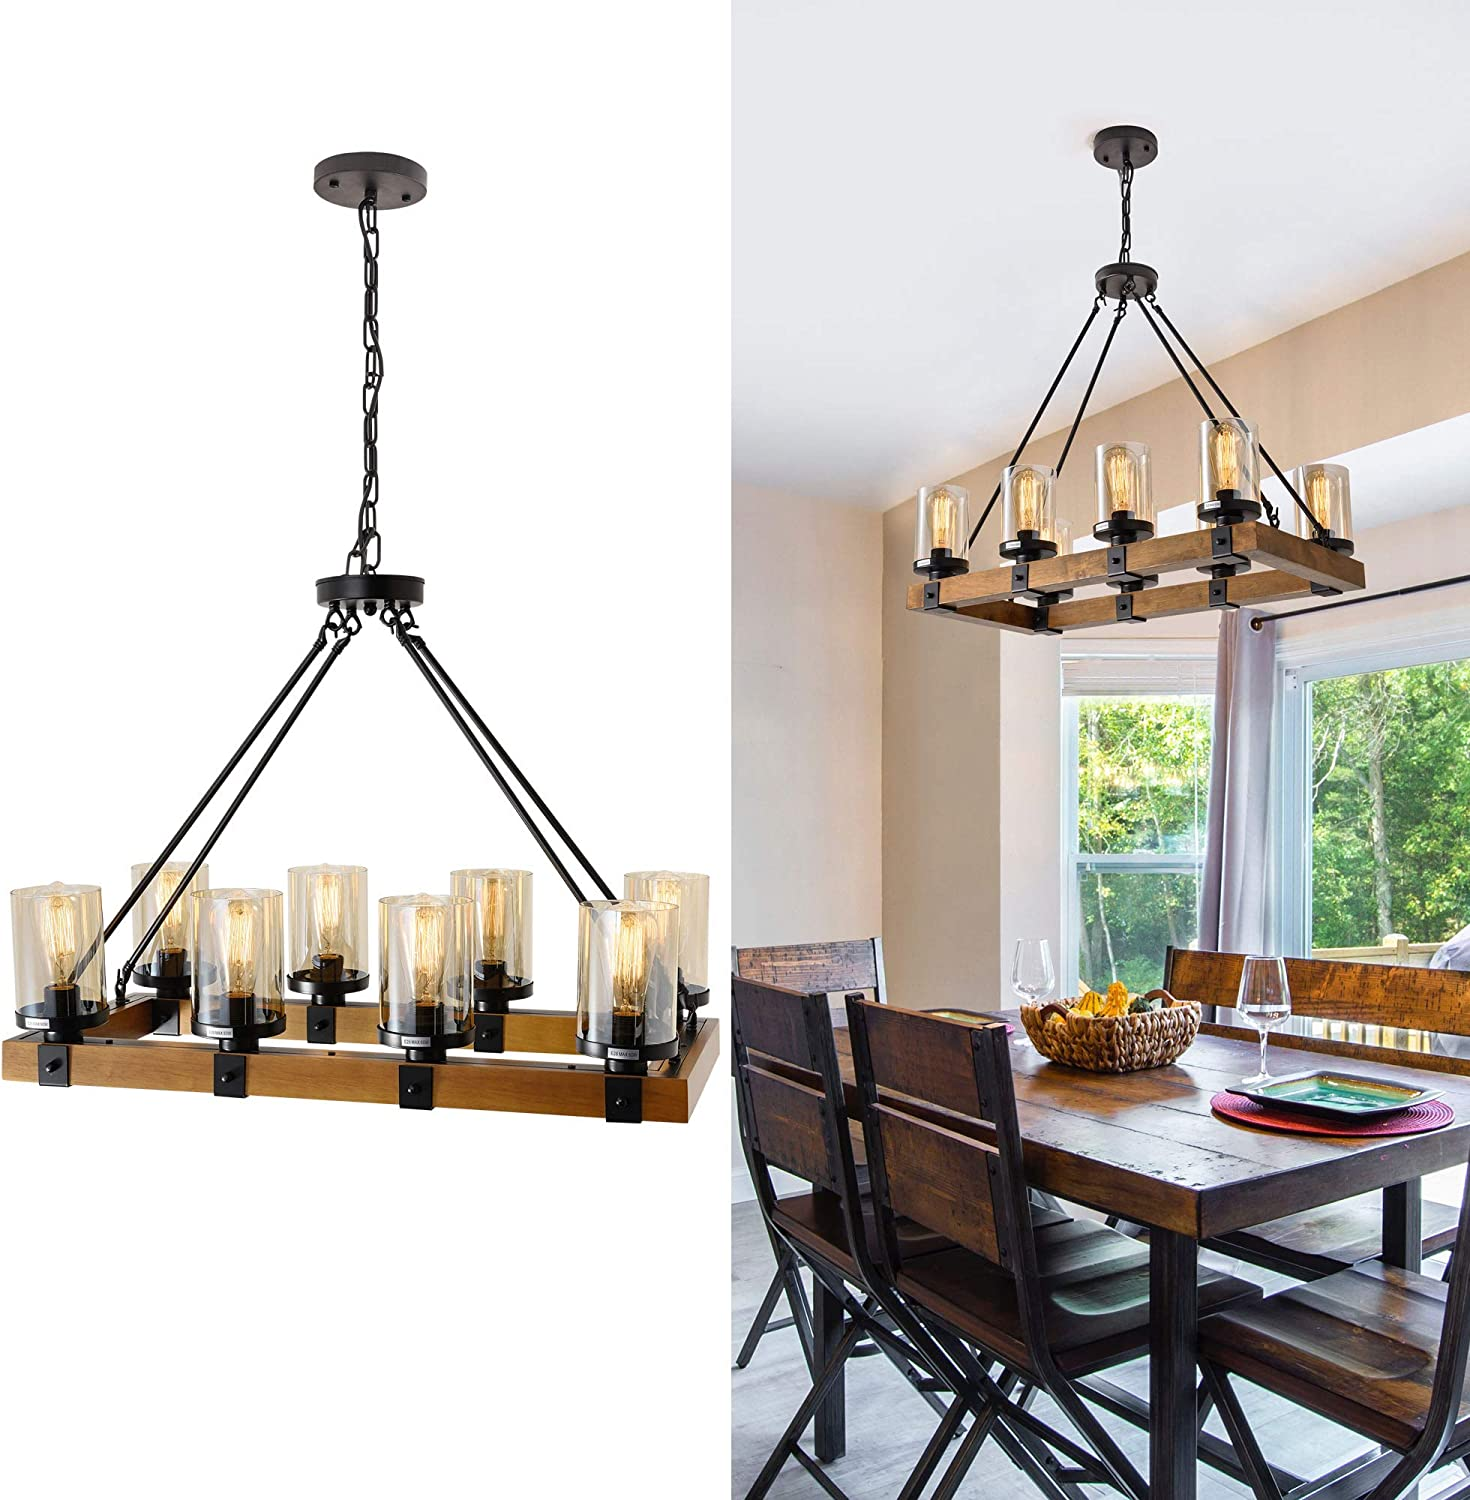 Amazon.com: Farmhouse Chandelier For Dining Room, Rustic Pendant Light Fixtures Ceiling Hanging Lighting With Glass Accent, Kitchen Island Lighting, Wood Chandelier 8-Light Max 480W (Black, 8-Light Wood): Home Improvement